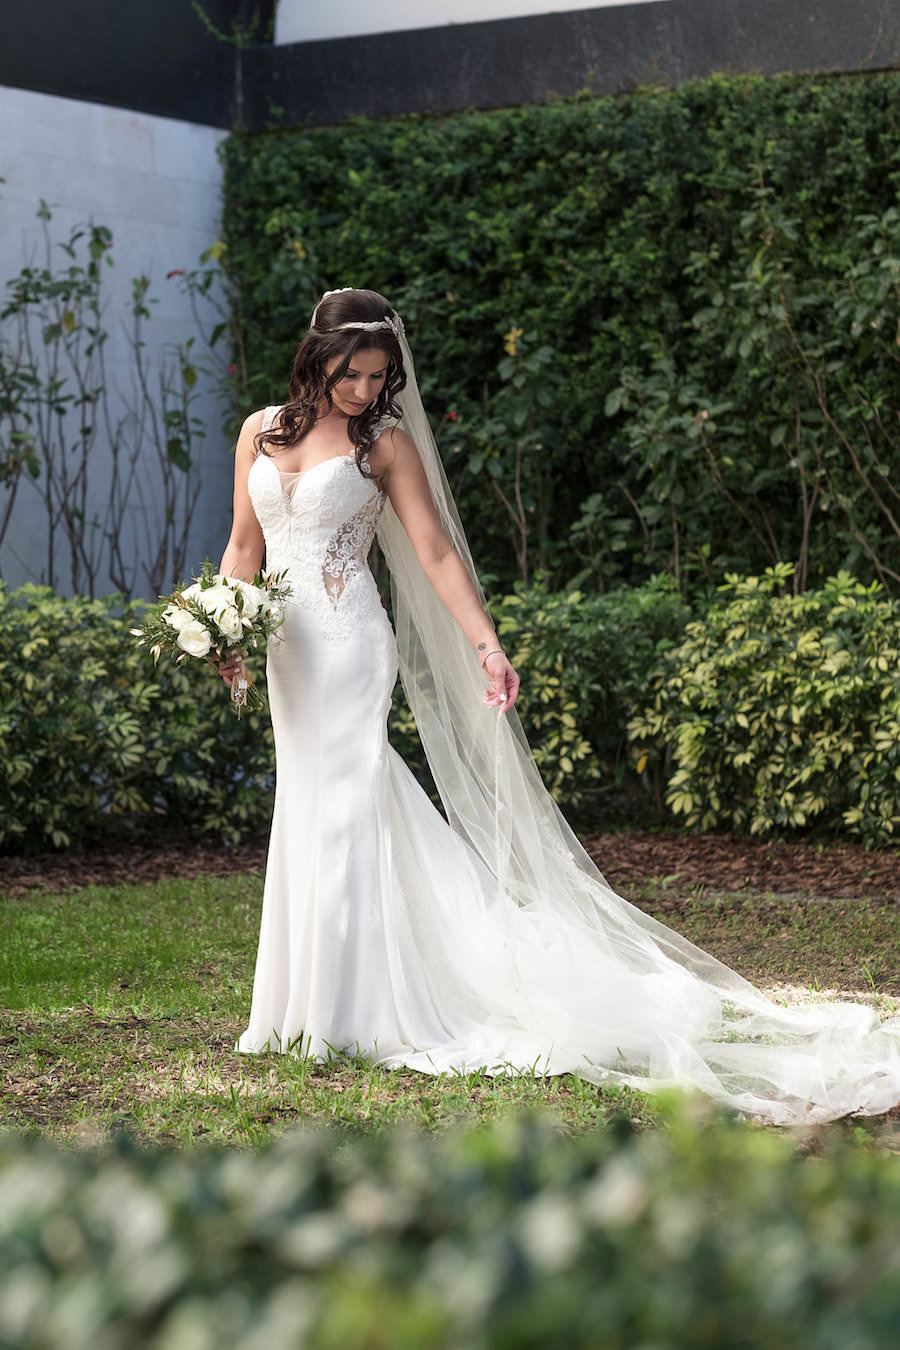 Outdoor Bride with Ivory Gown and Veil with Lace Details and Ivory Roses Wedding Portrait | Tampa Wedding Photographer Marc Edwards Photographs | Florist Apple Blossoms Floral Designs